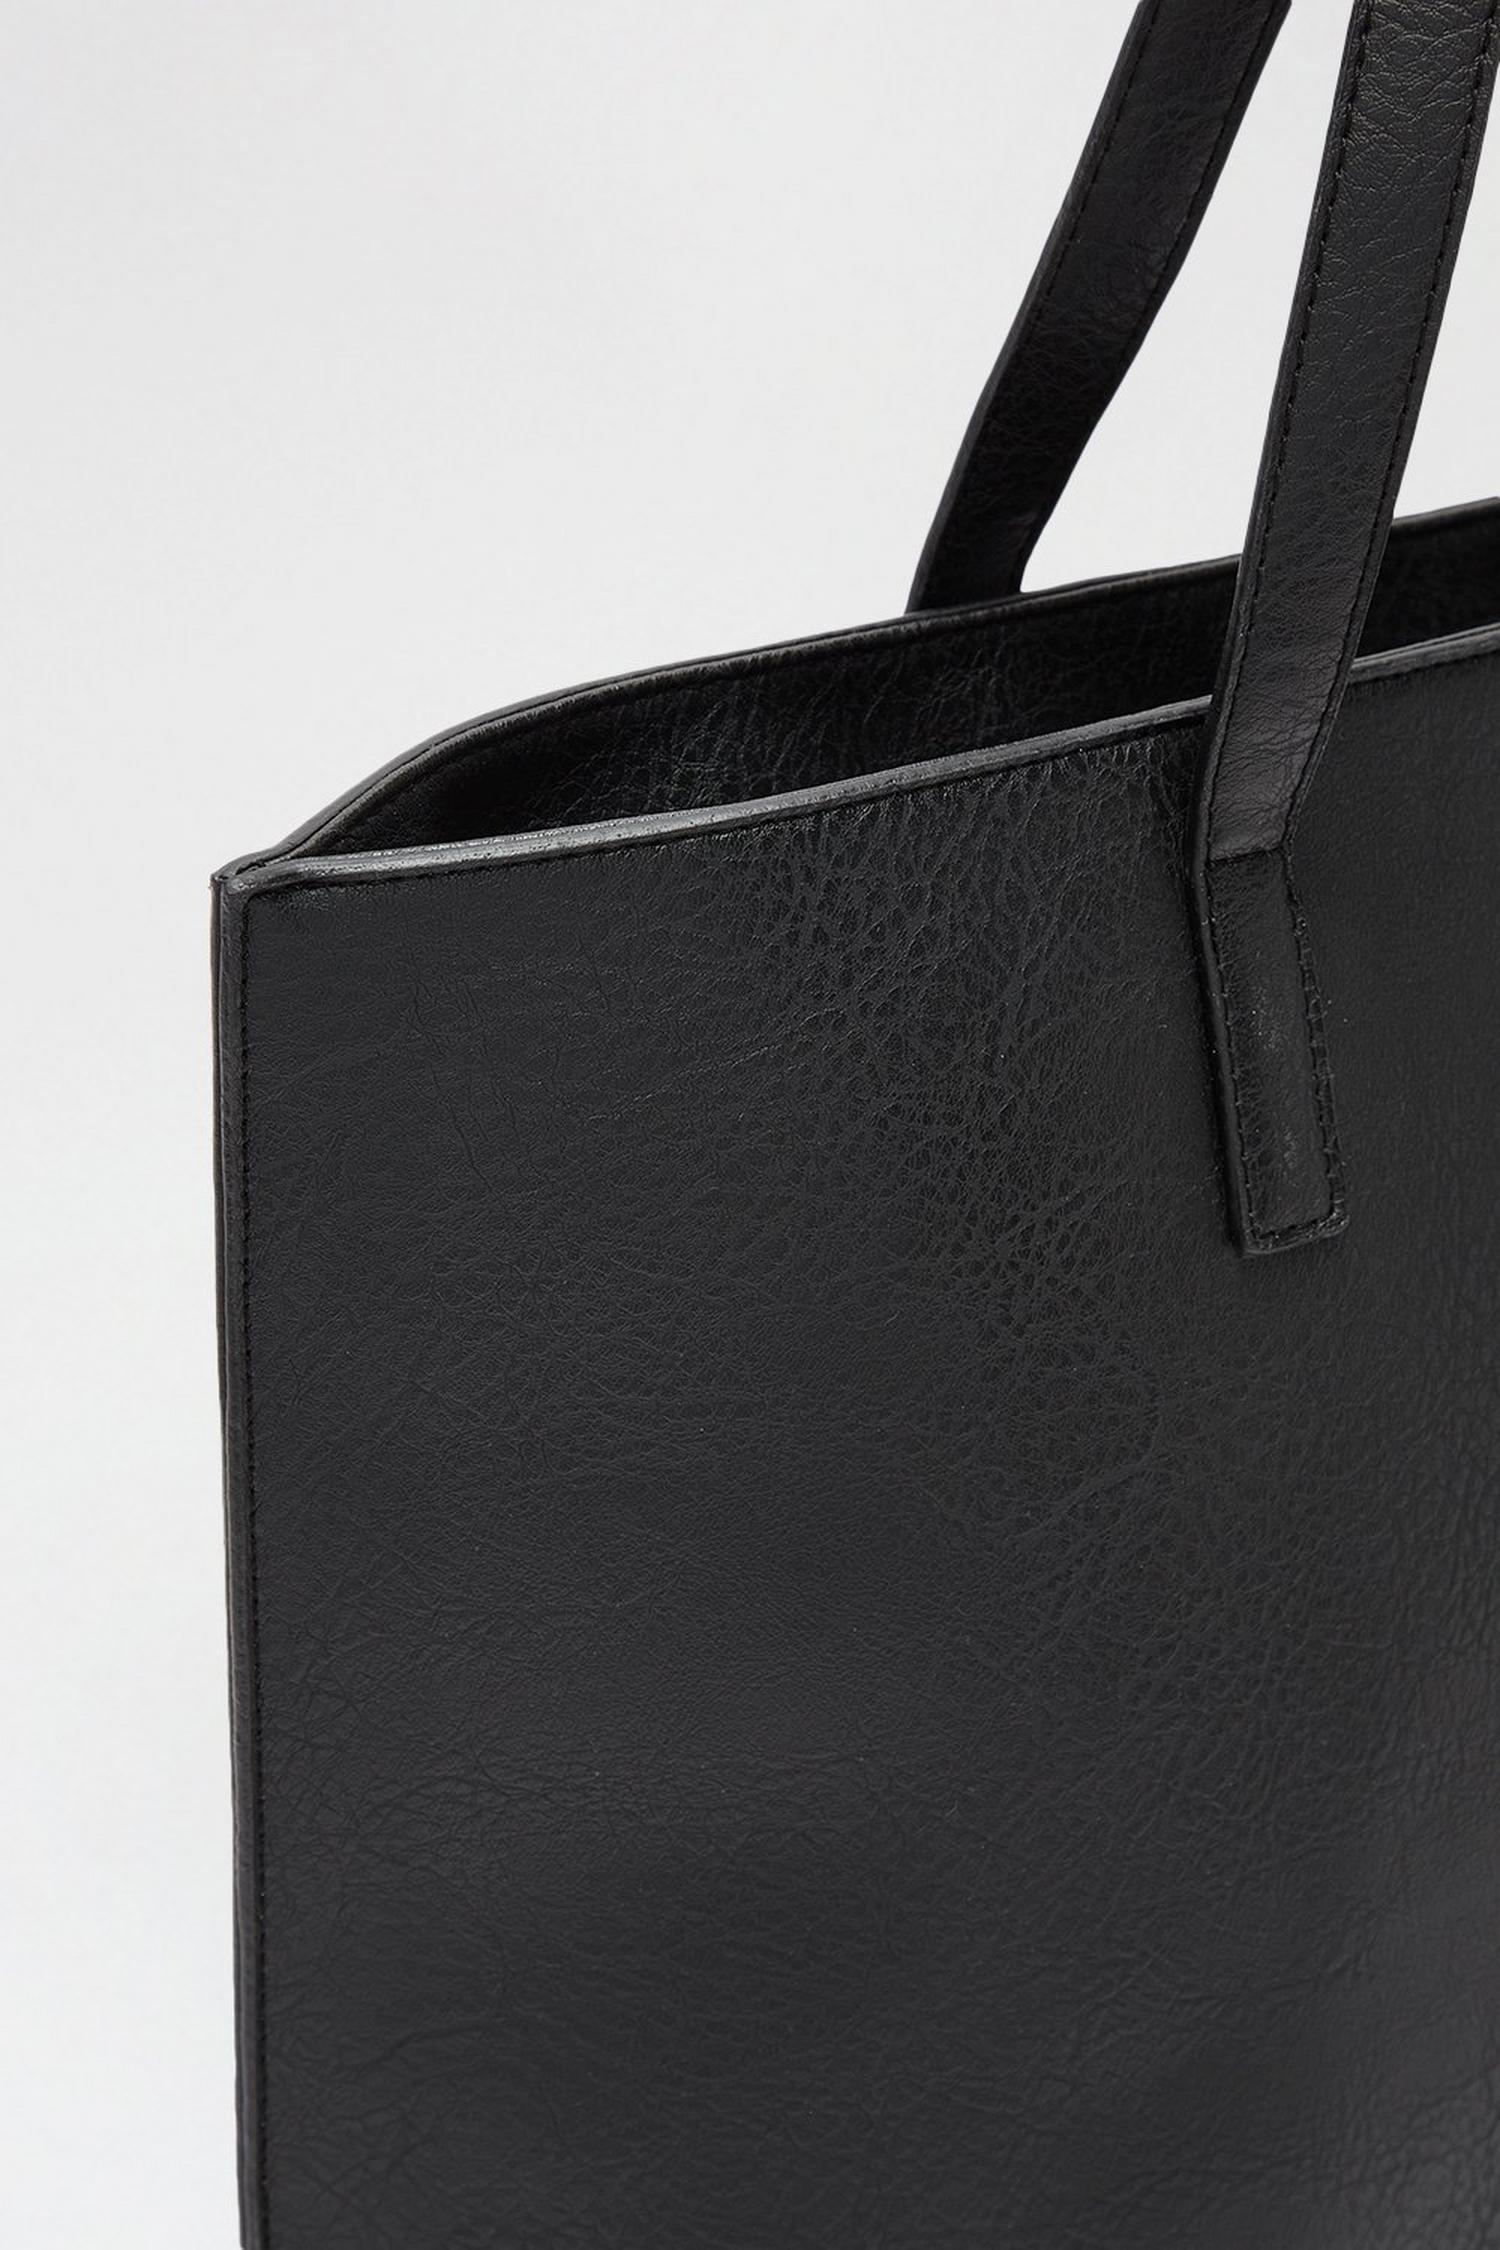 105 Black Shopper Bag image number 4